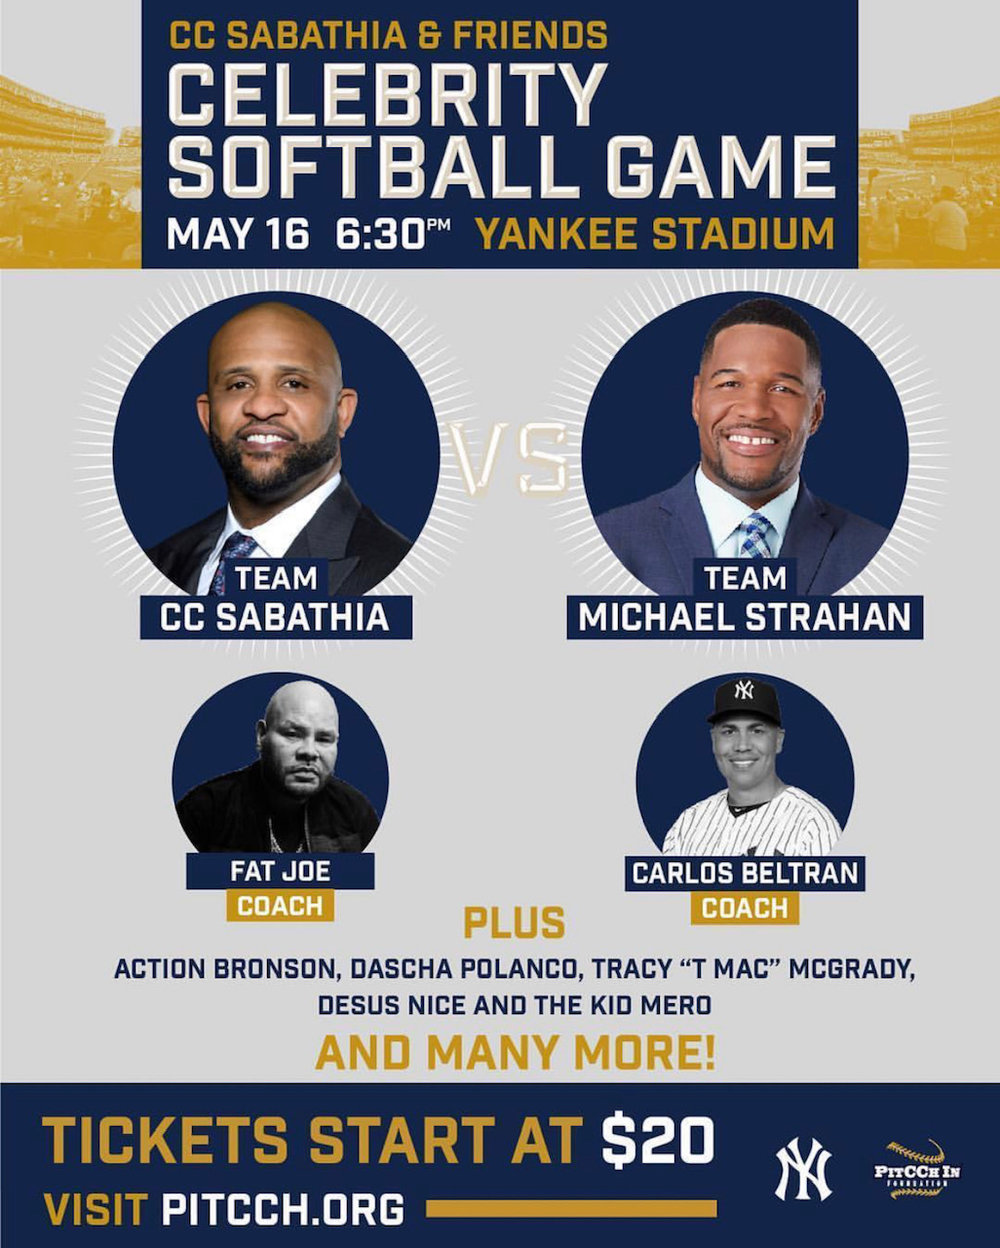 CC Sabathia & Friends